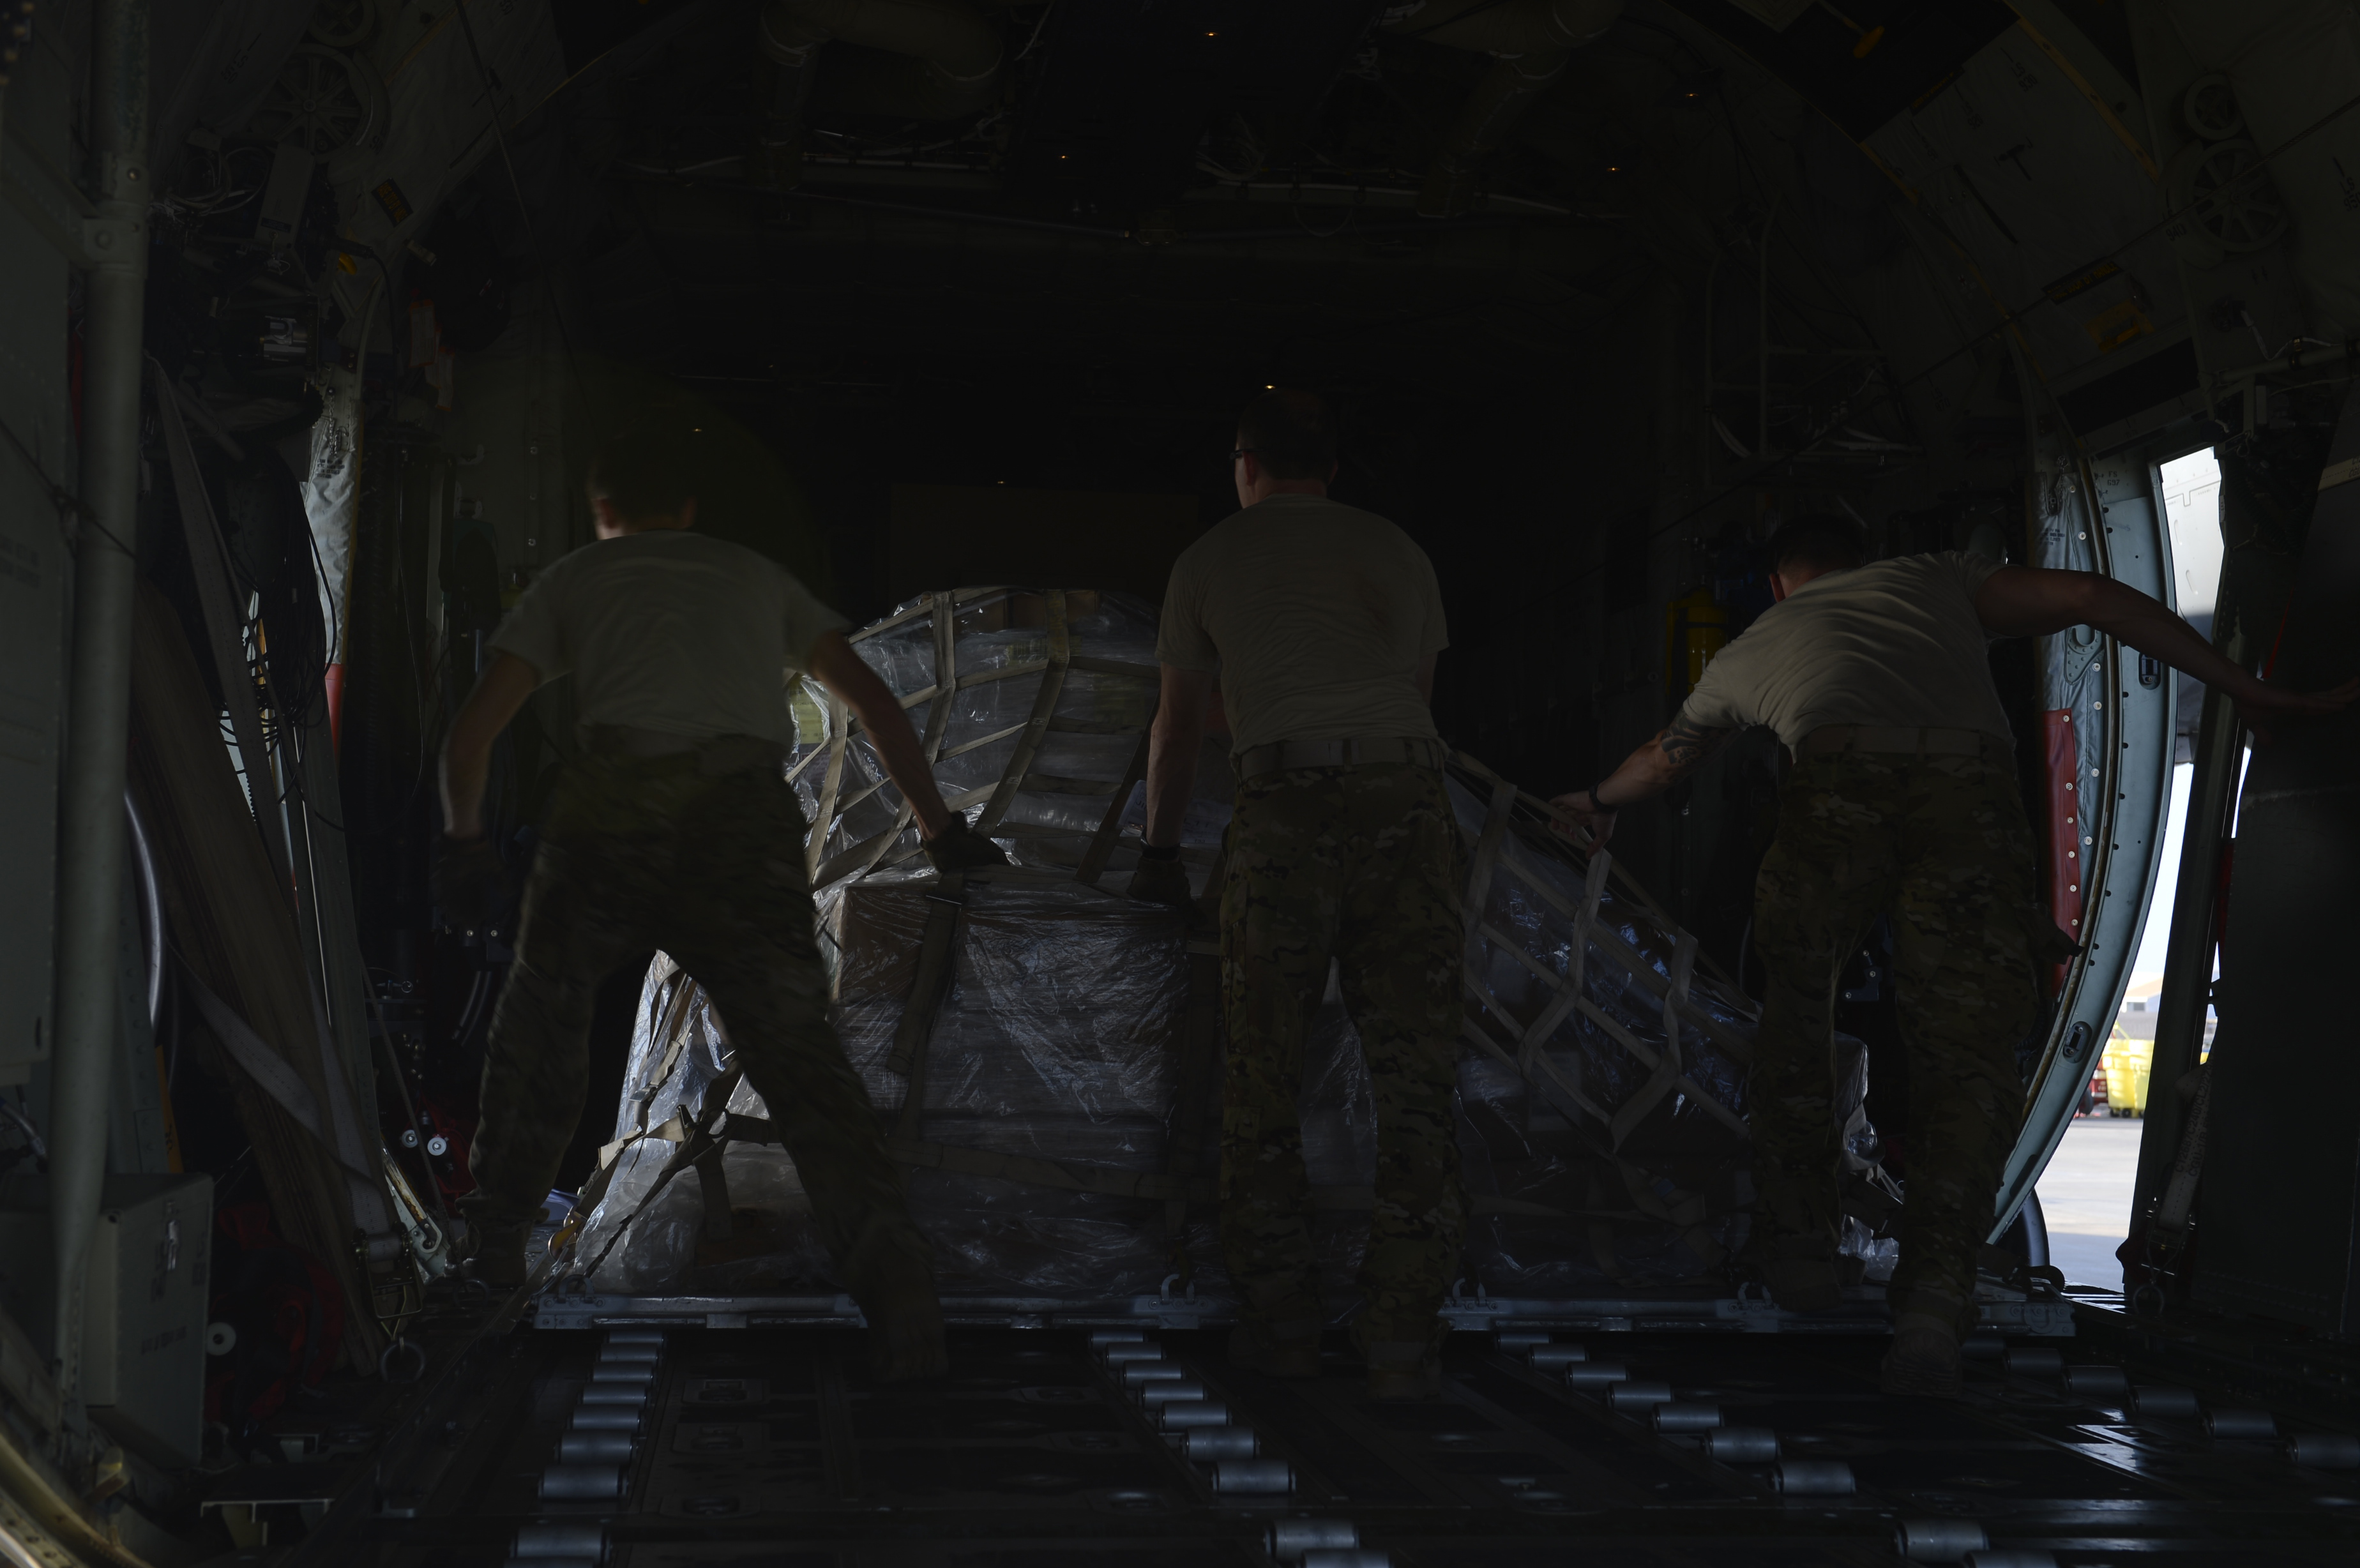 Airmen from the 75th Expeditionary Airlift Squadron push a pallet of equipment into a C-130J Super Hercules Nov. 24, 2015, at Camp Lemonnier, Djibouti. The flexible design of the C-130J enables it to be configured for many different missions, including airlift, air-ground and aeromedical evacuation. (U.S. Air Force photo by Senior Airman Peter Thompson)